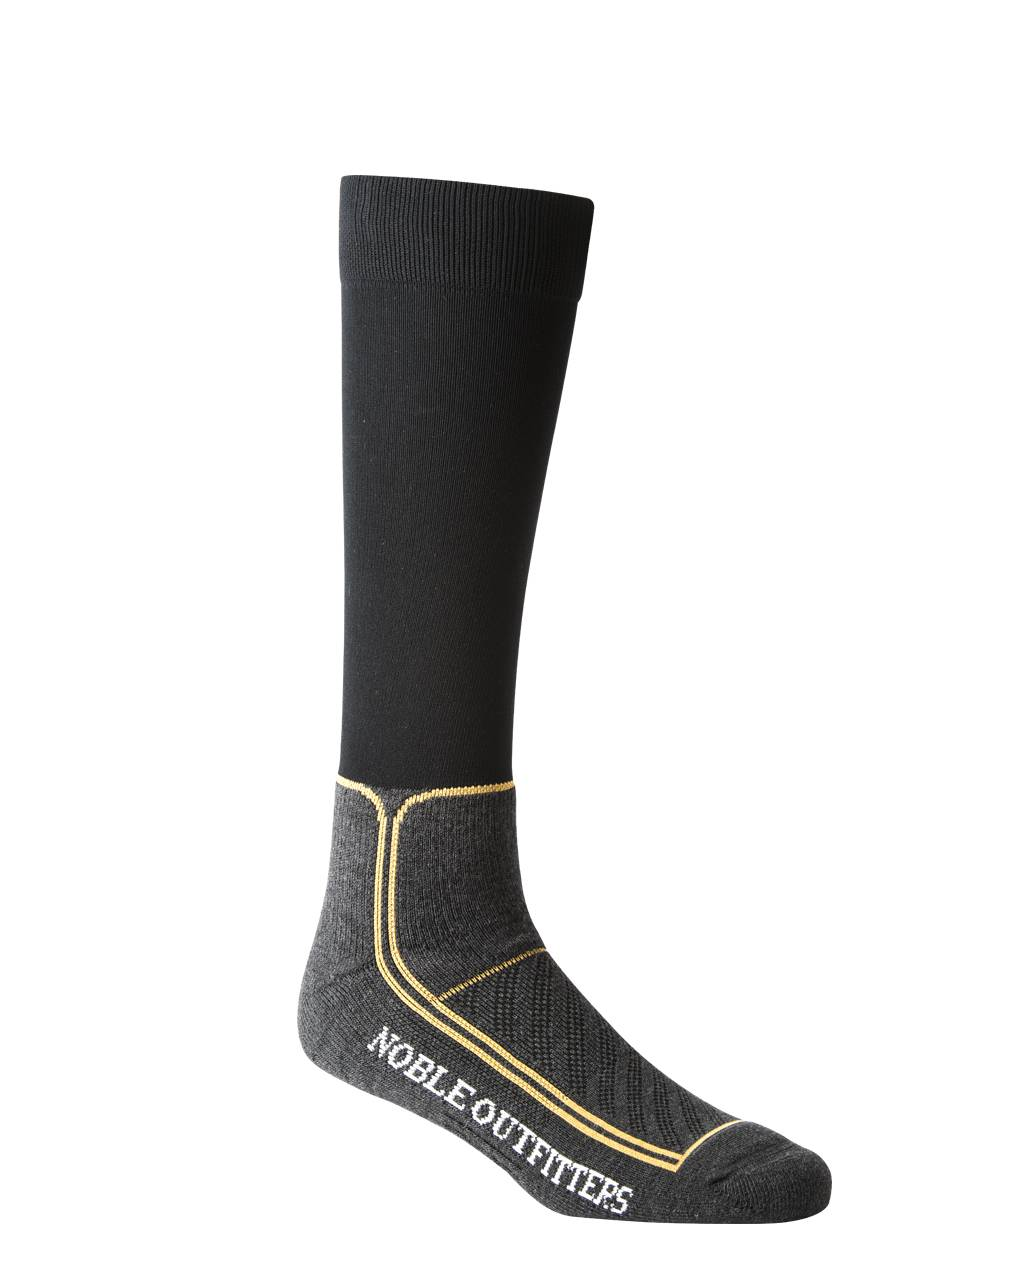 Noble Outfitters Thermothin Socks